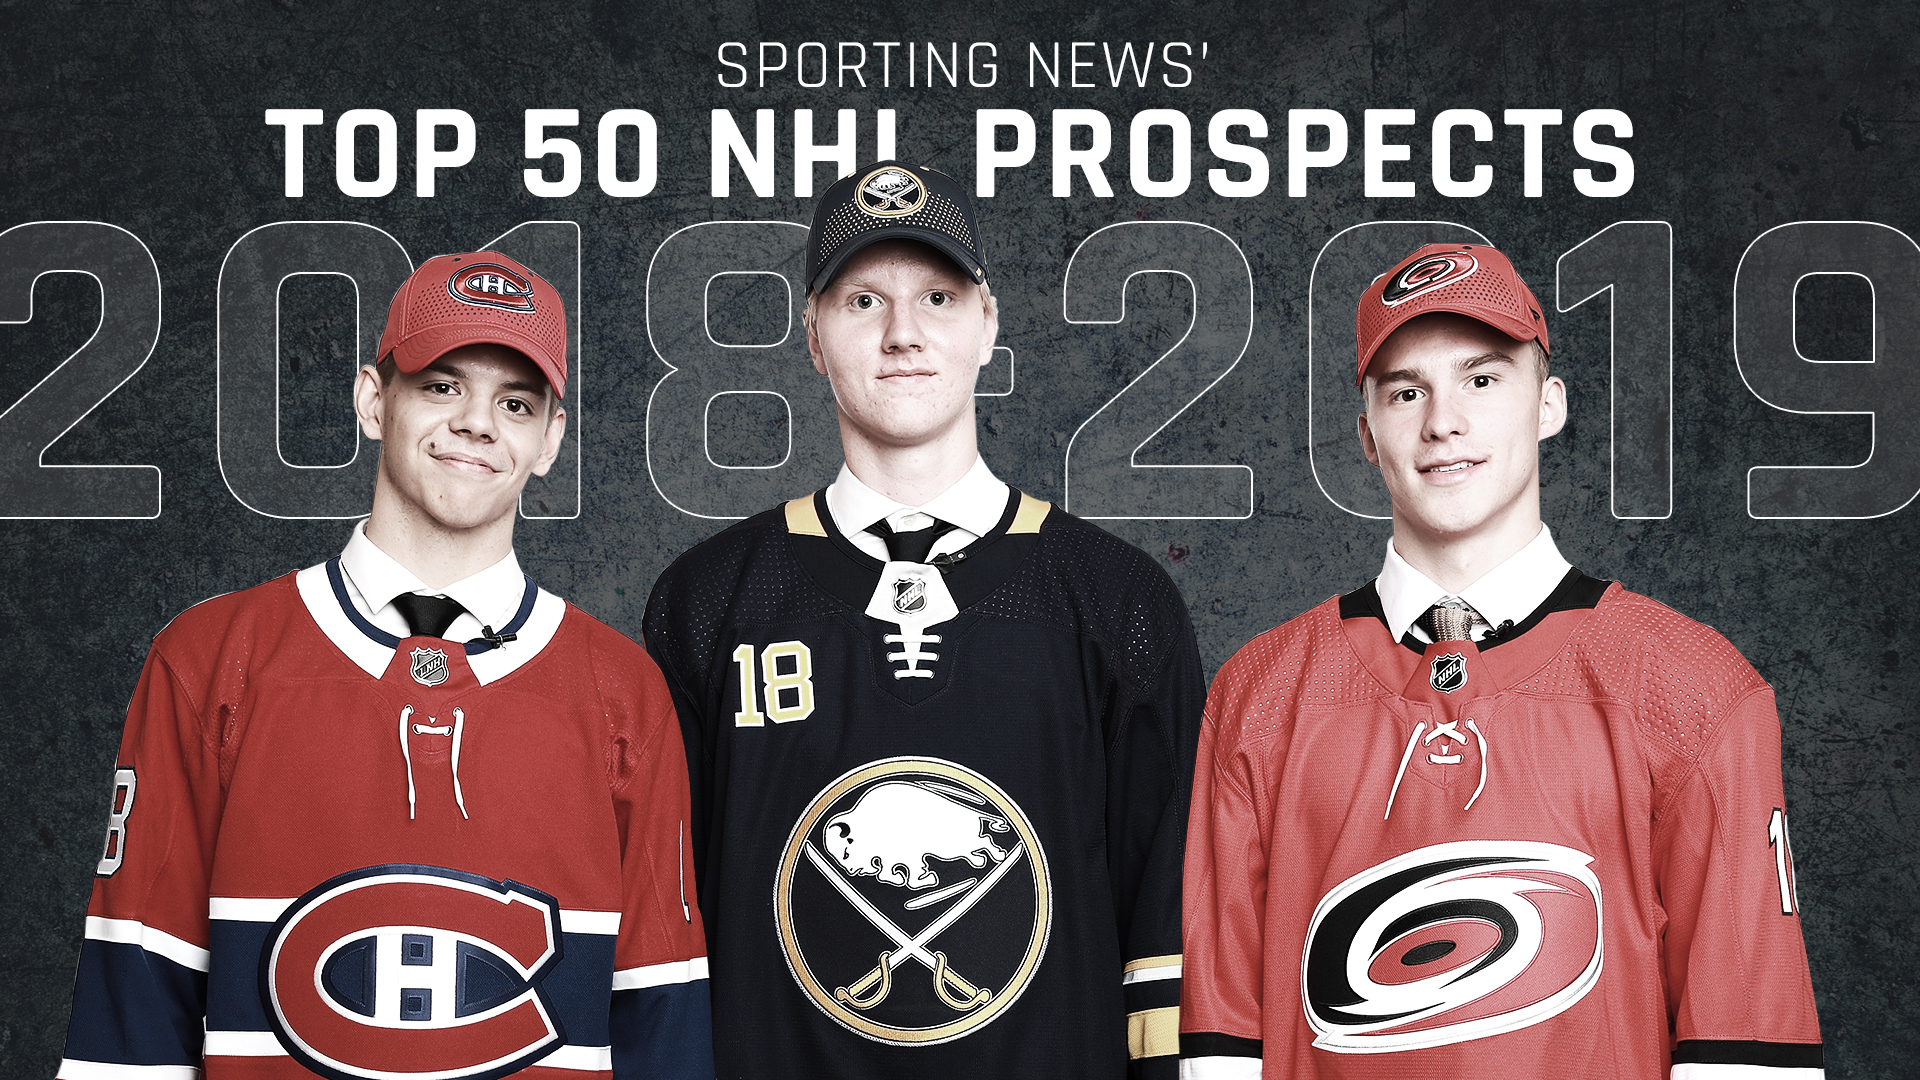 NHL prospect rankings: Top 50 players in NHL pipelines for